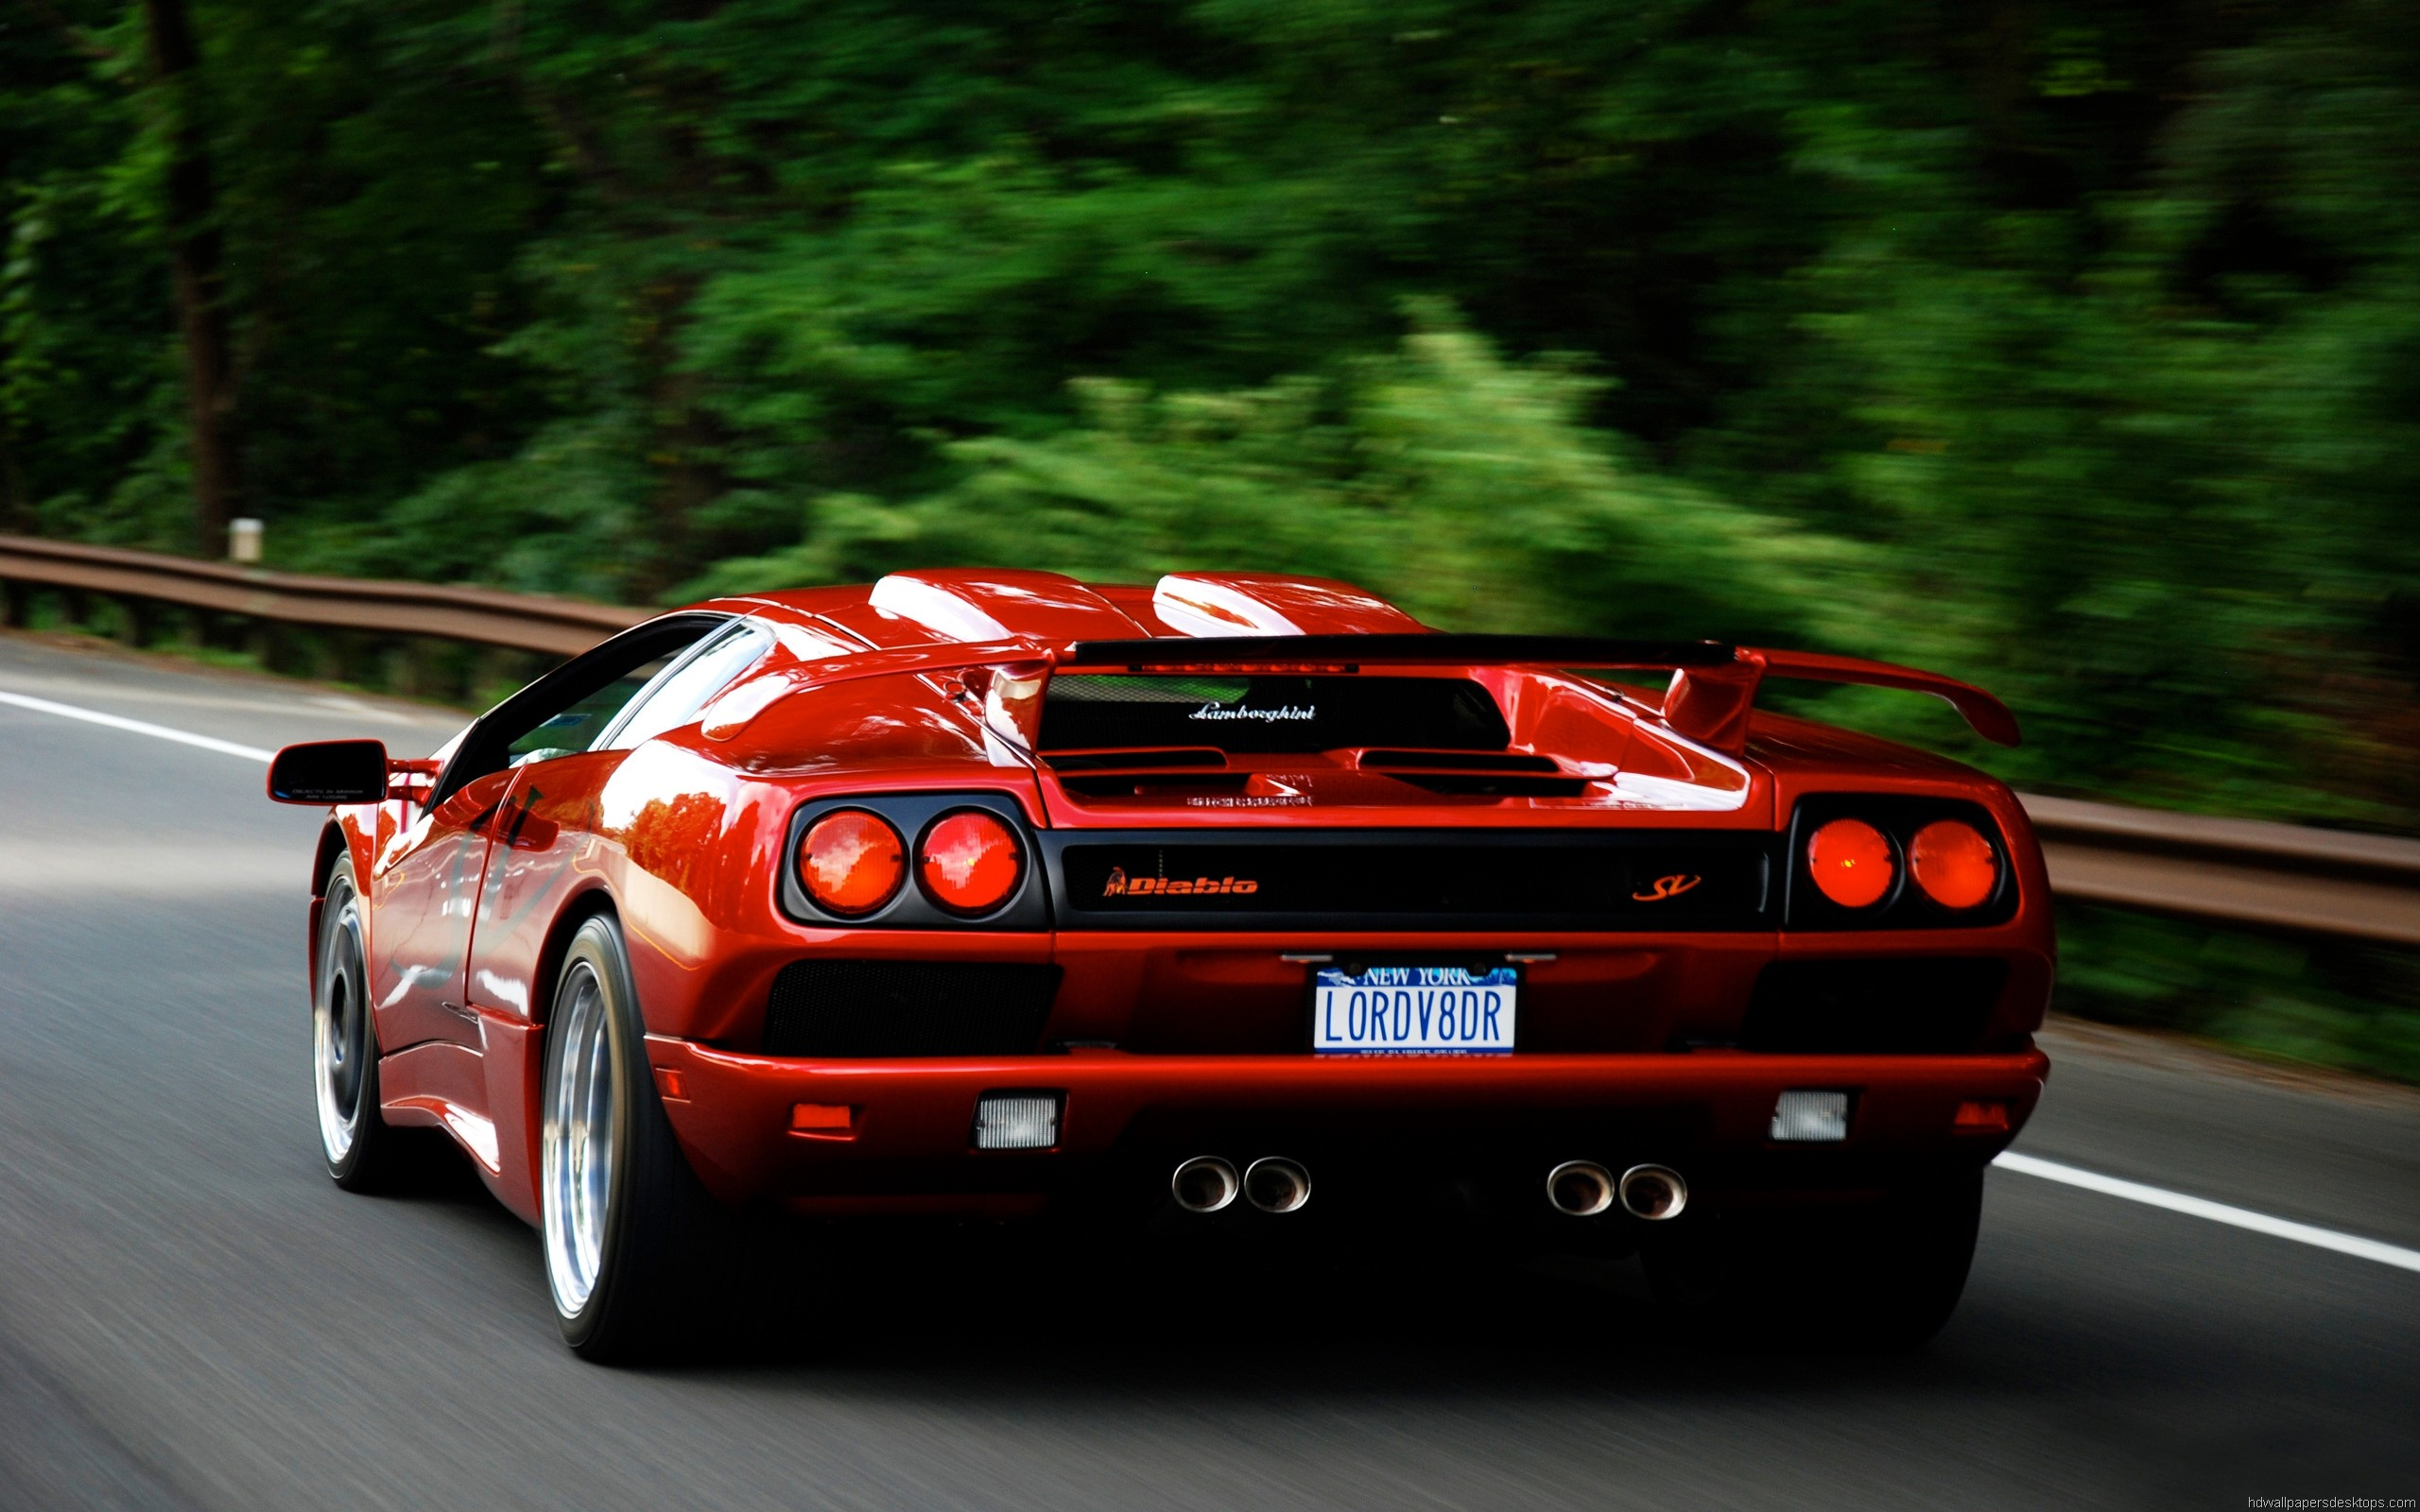 2560x1600 cars wallpapers hd full hd 1080p desktop backgrounds